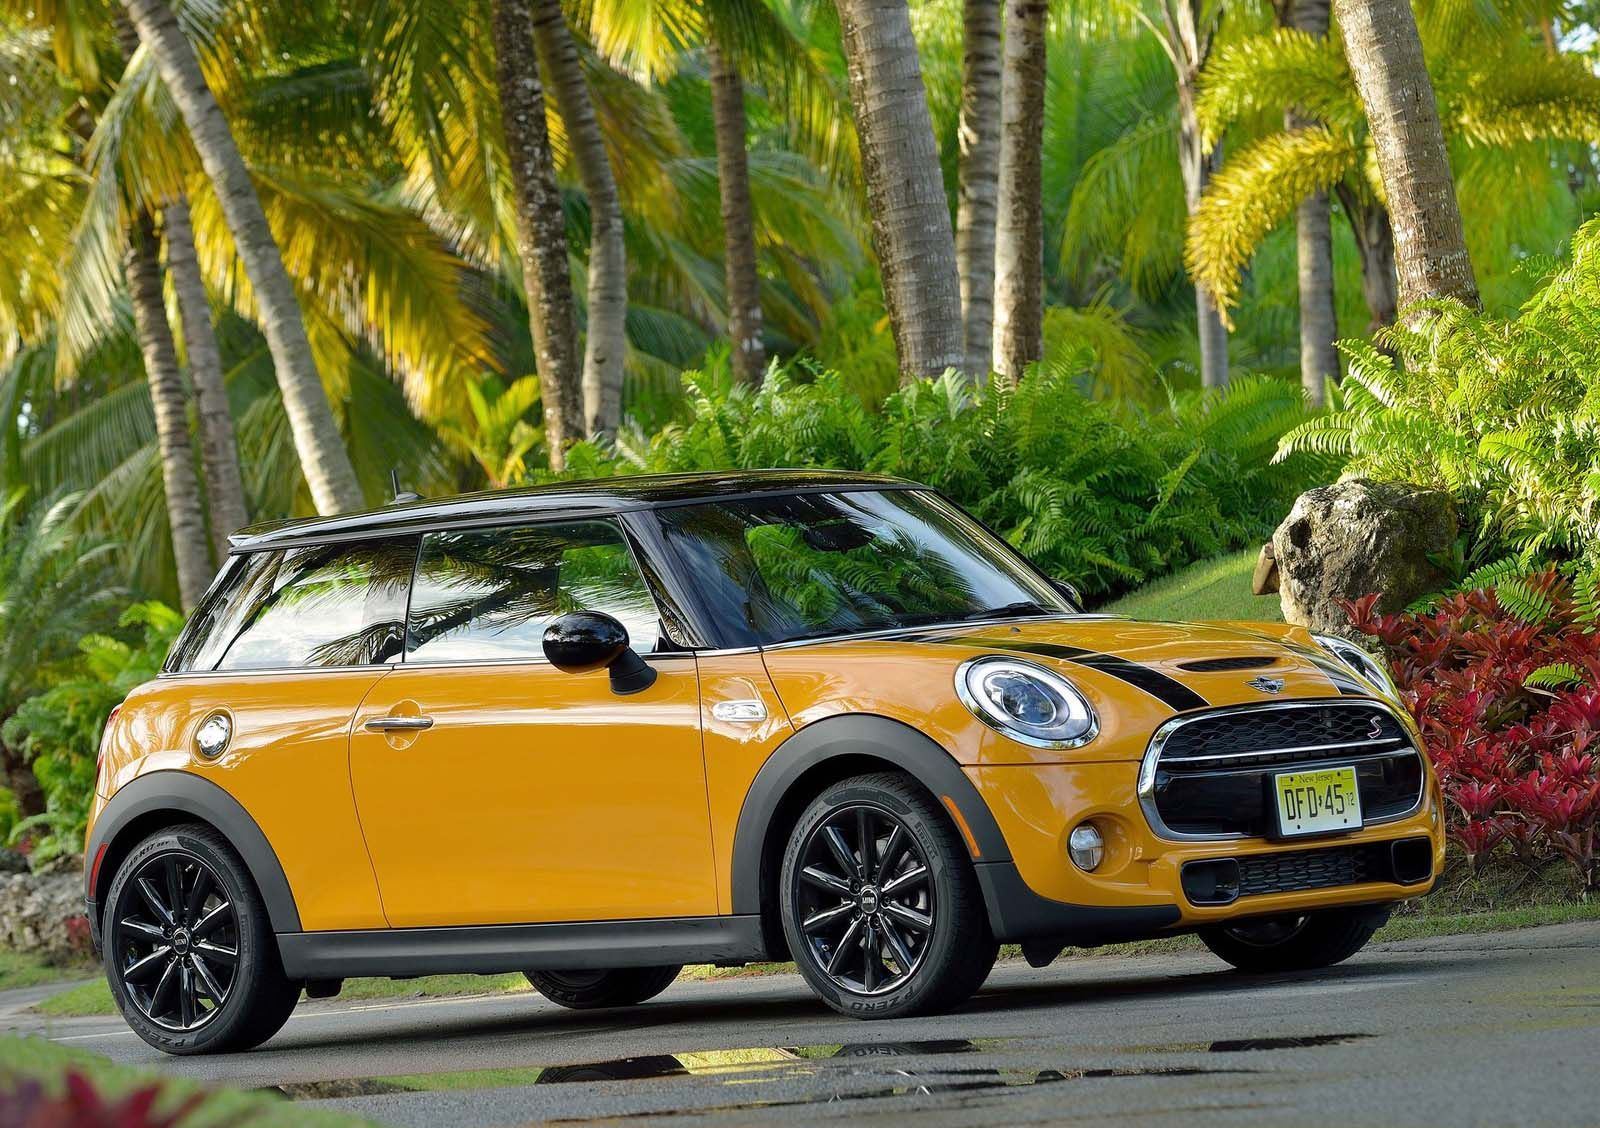 mini cooper hd wallpapers 9 | mini cooper hd wallpapers | pinterest